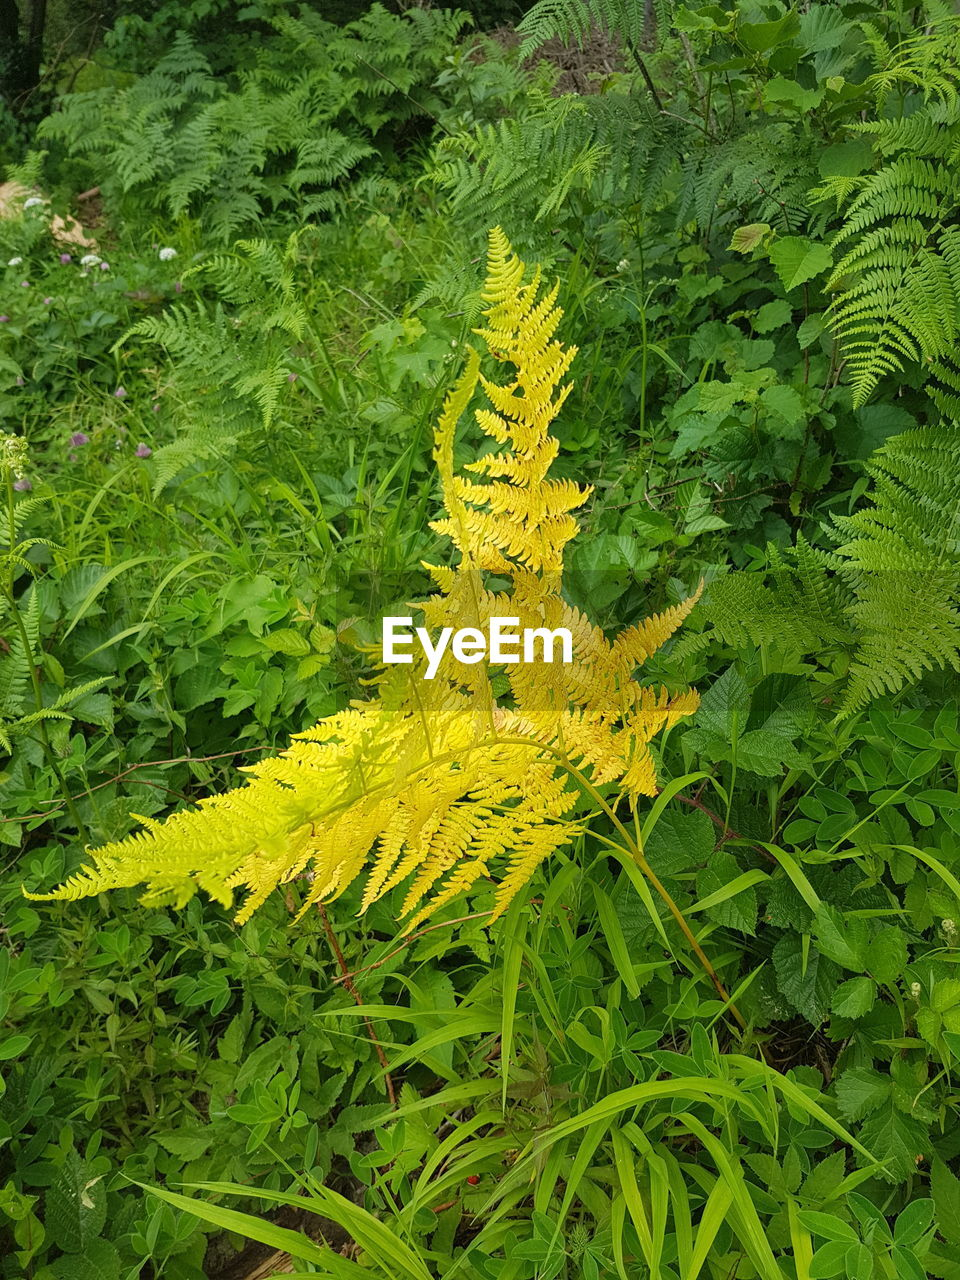 green color, plant, growth, leaf, plant part, nature, yellow, beauty in nature, no people, high angle view, close-up, day, fern, freshness, flower, outdoors, flowering plant, natural pattern, land, animals in the wild